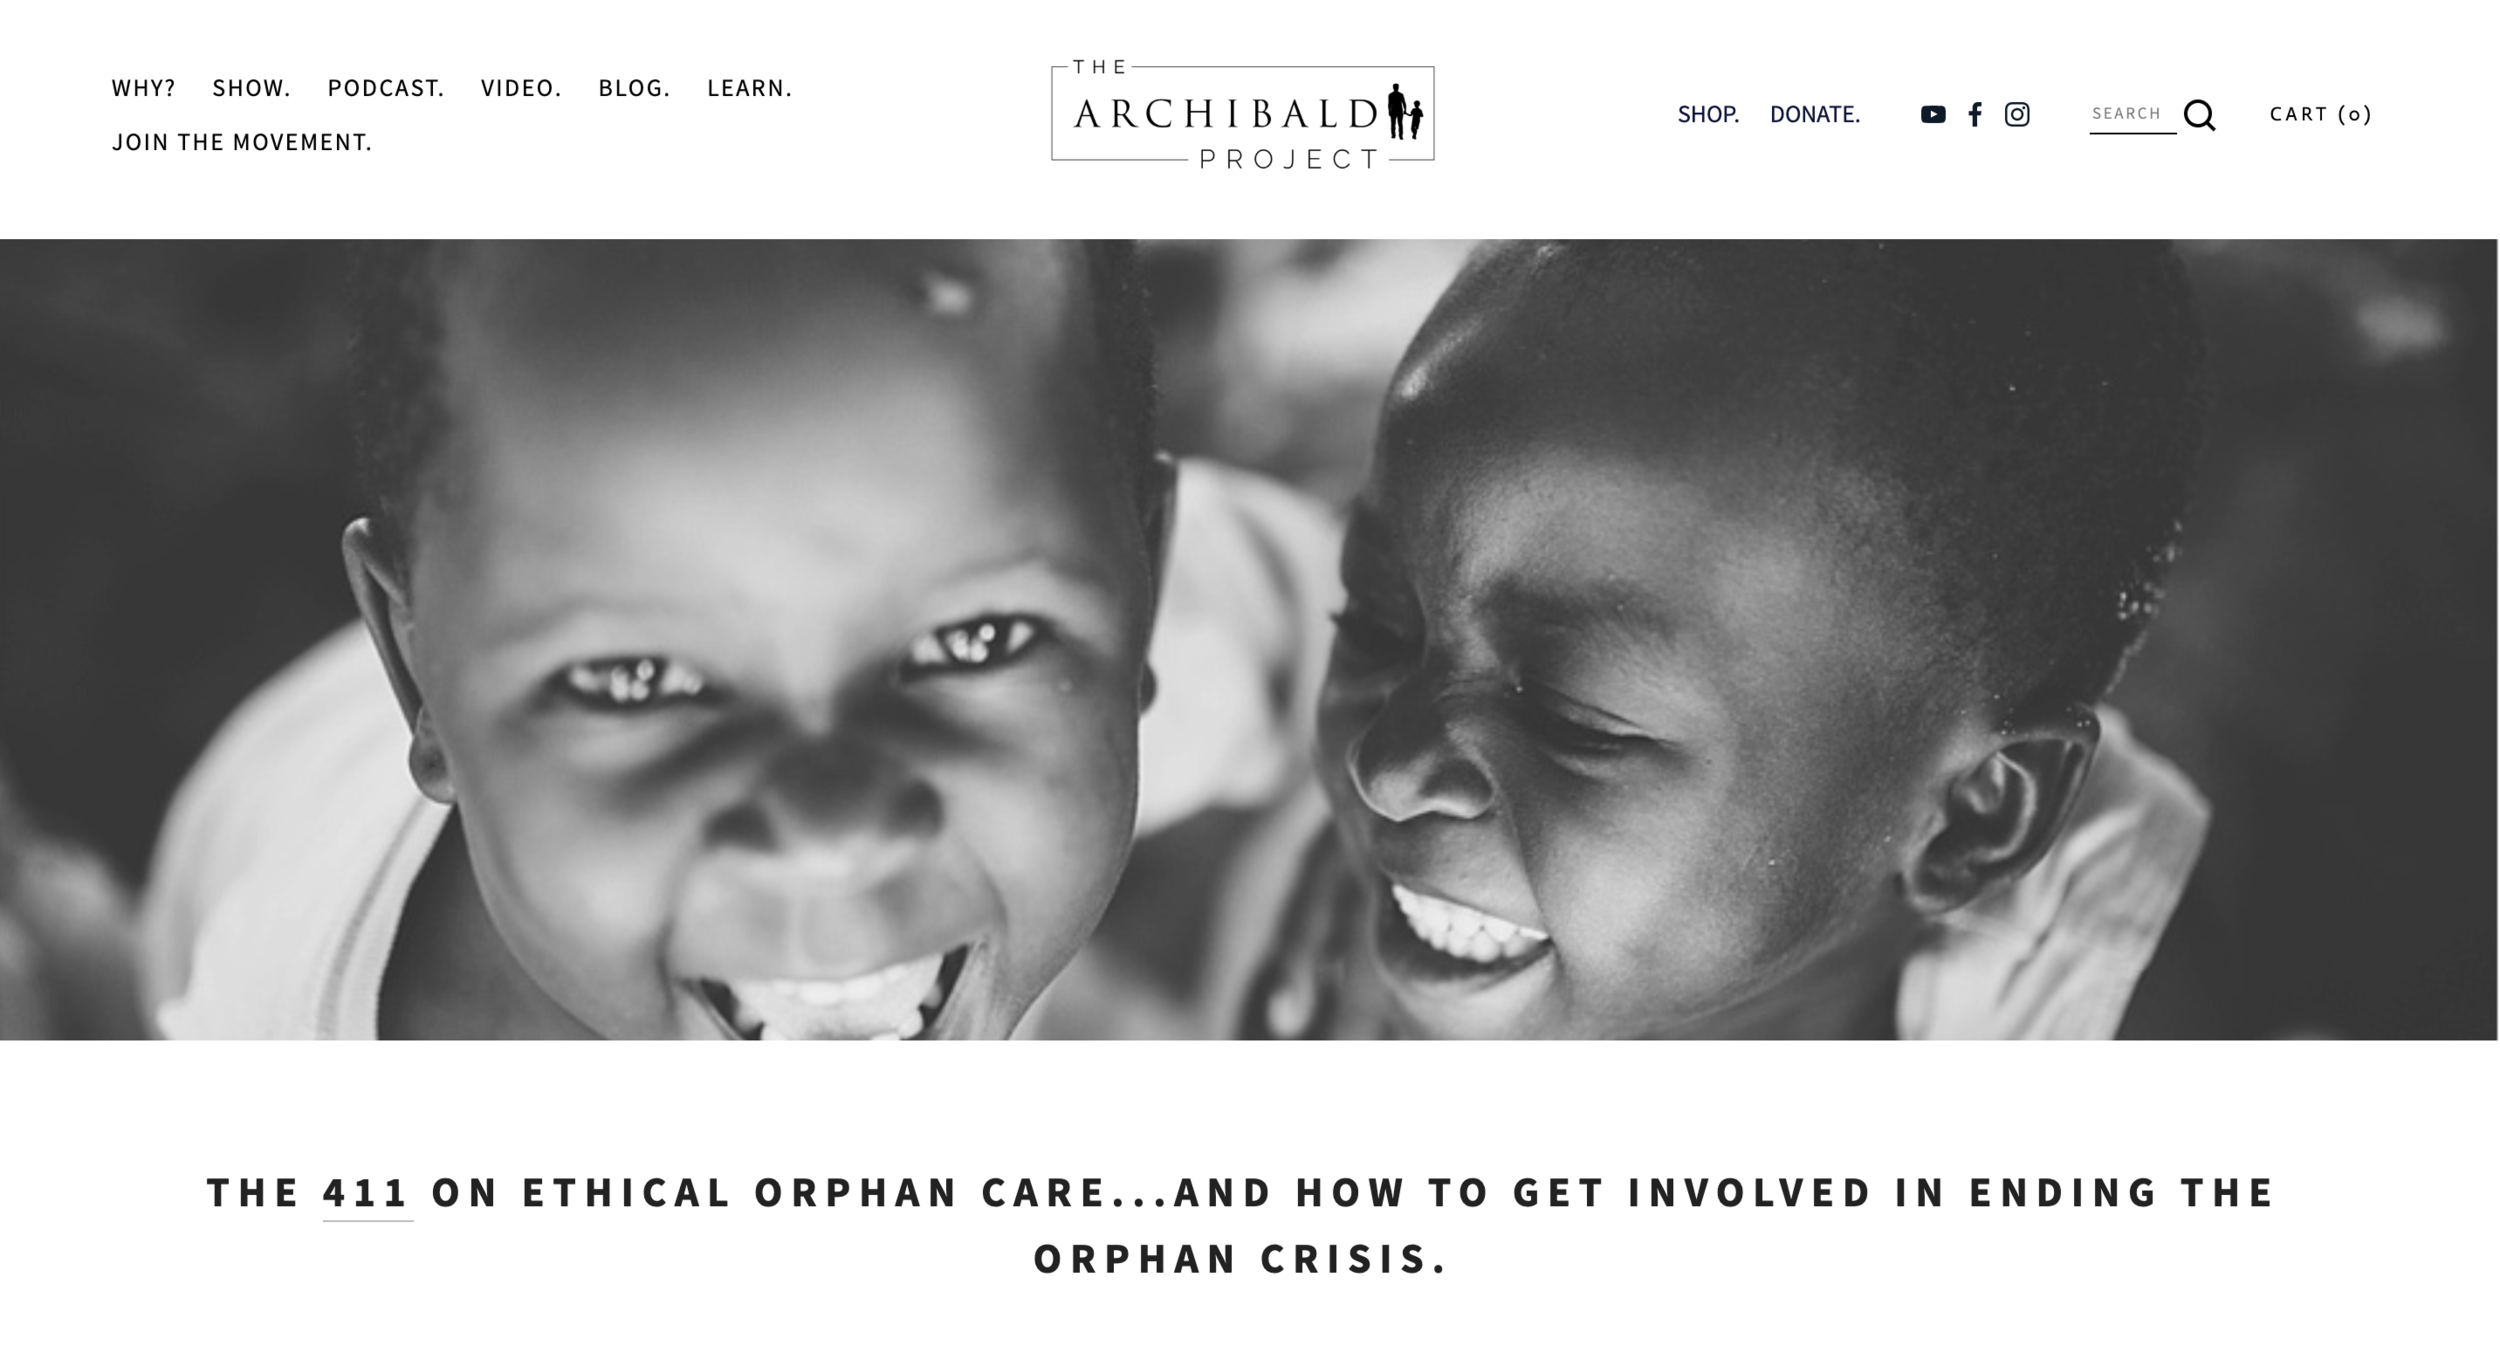 THE ARCHIBALD PROJECT - The Archibald Project is using storytelling to spark and expand a movement of people to care for orphaned and vulnerable children in creative and educated ways, in order to combat and end the global orphan crisis.